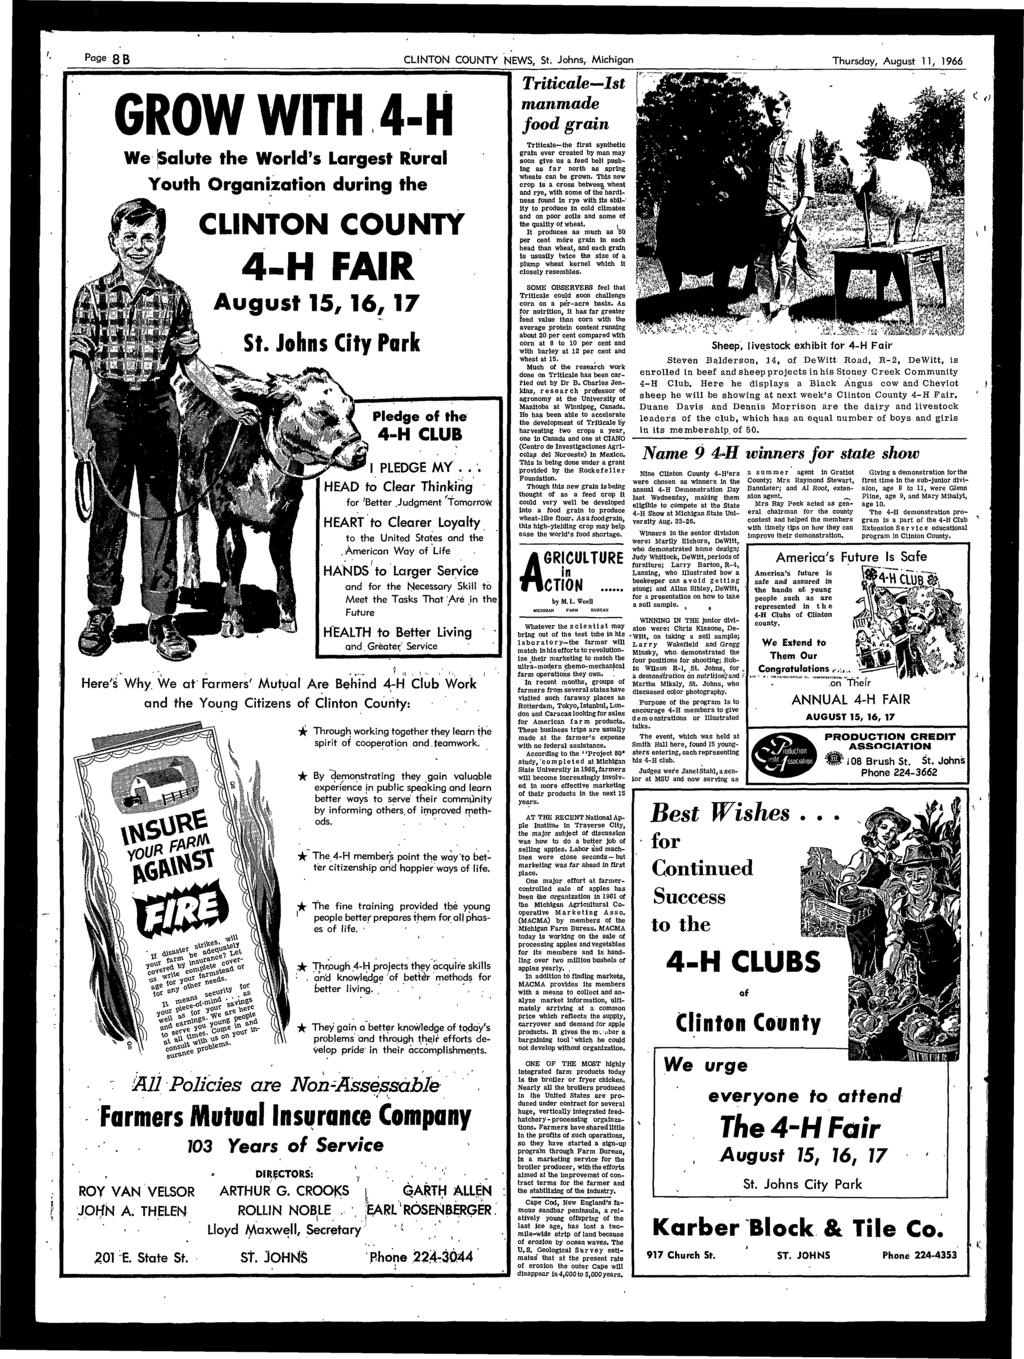 2 more die in county traffic page 2 a pdf 1963 Advertisements Budweiser r page 8b clinton county news st johns michigan thursday august 11